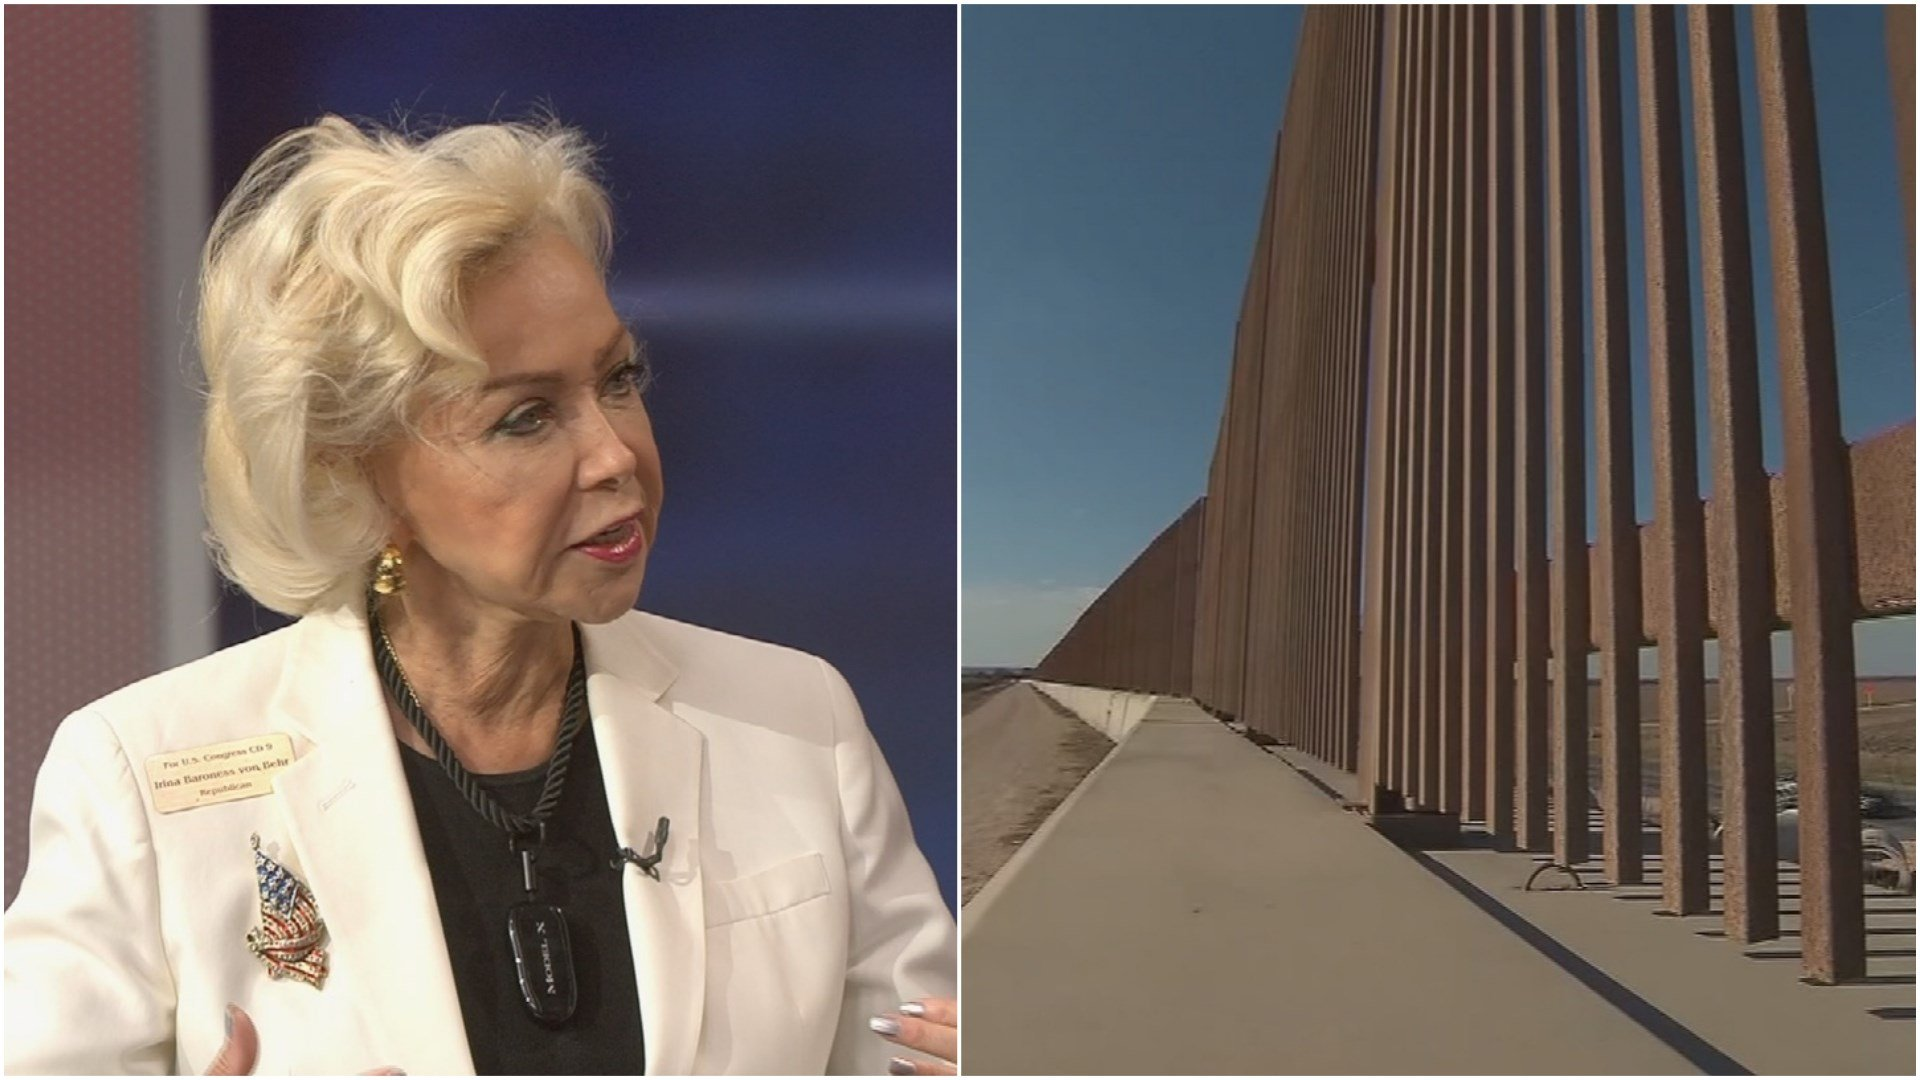 Irina Baroness Von Behr, who is running for the open seat in Arizona's 9th Congressional District, suggests a national lottery to pay for the border wall. (Source: 3TV/CBS 5)